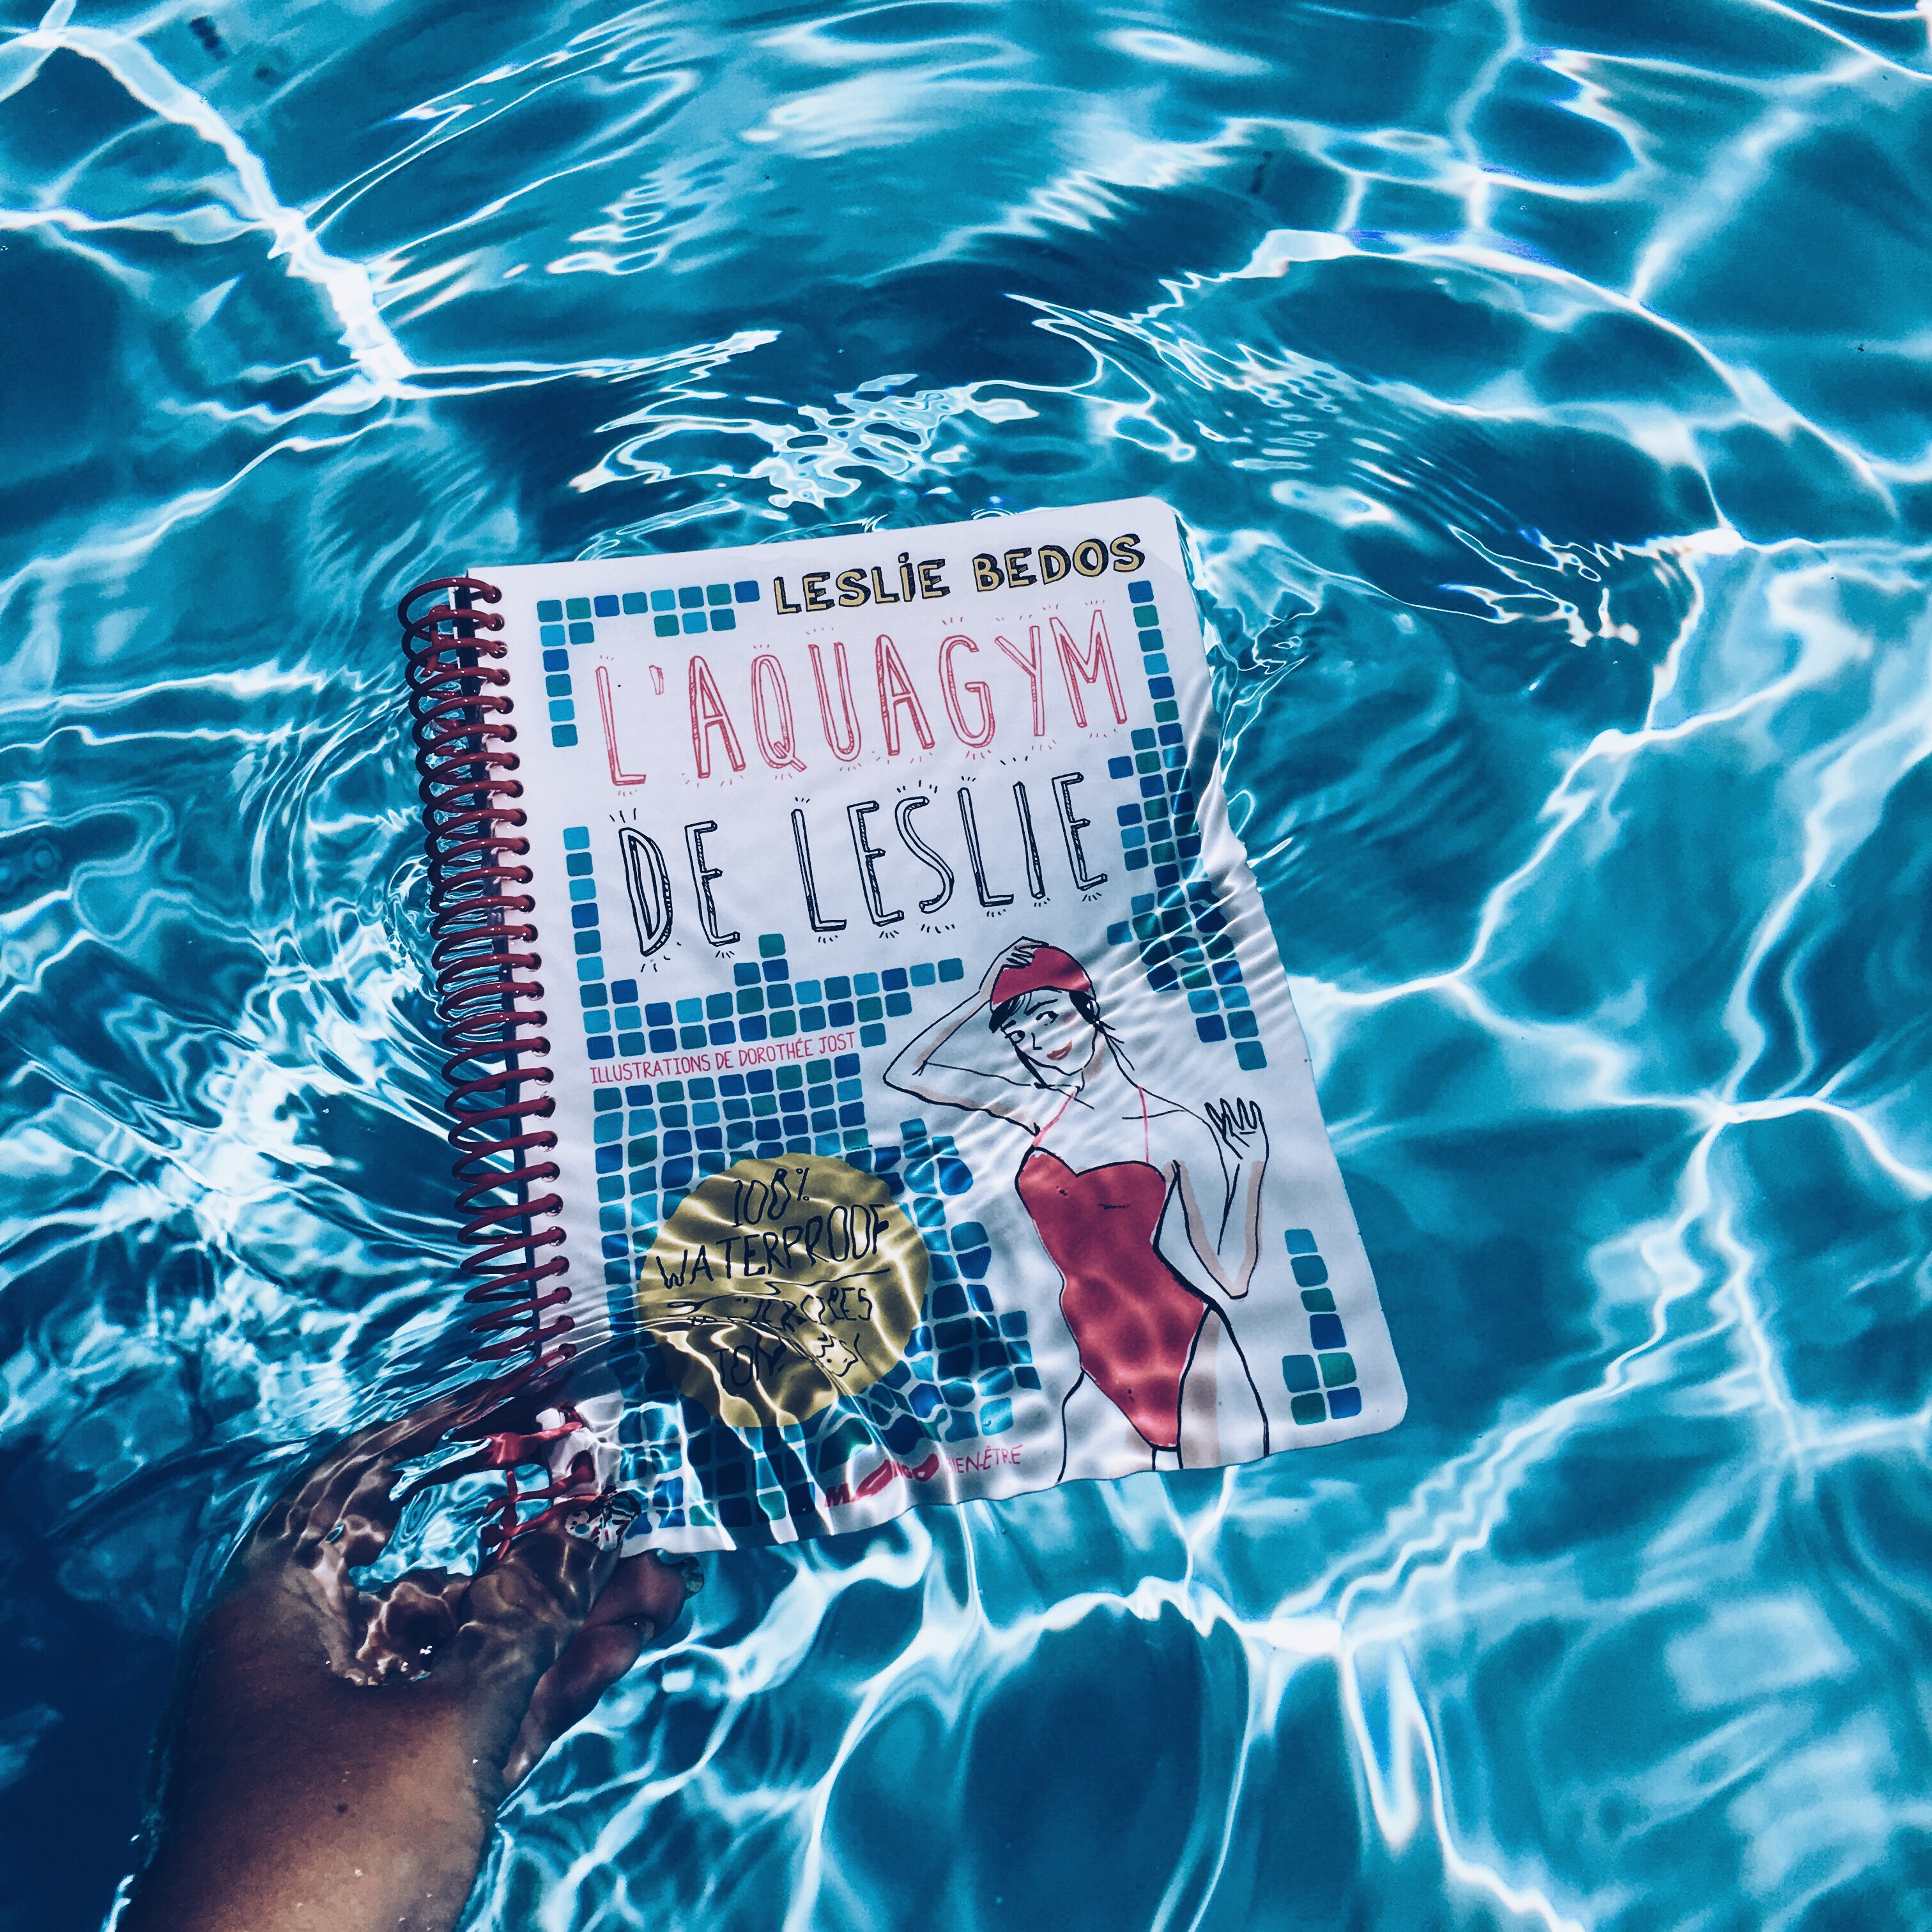 aquagym-livre-waterproof-piscine-sport-fitness-leslie-bedos-soprettylittlethings